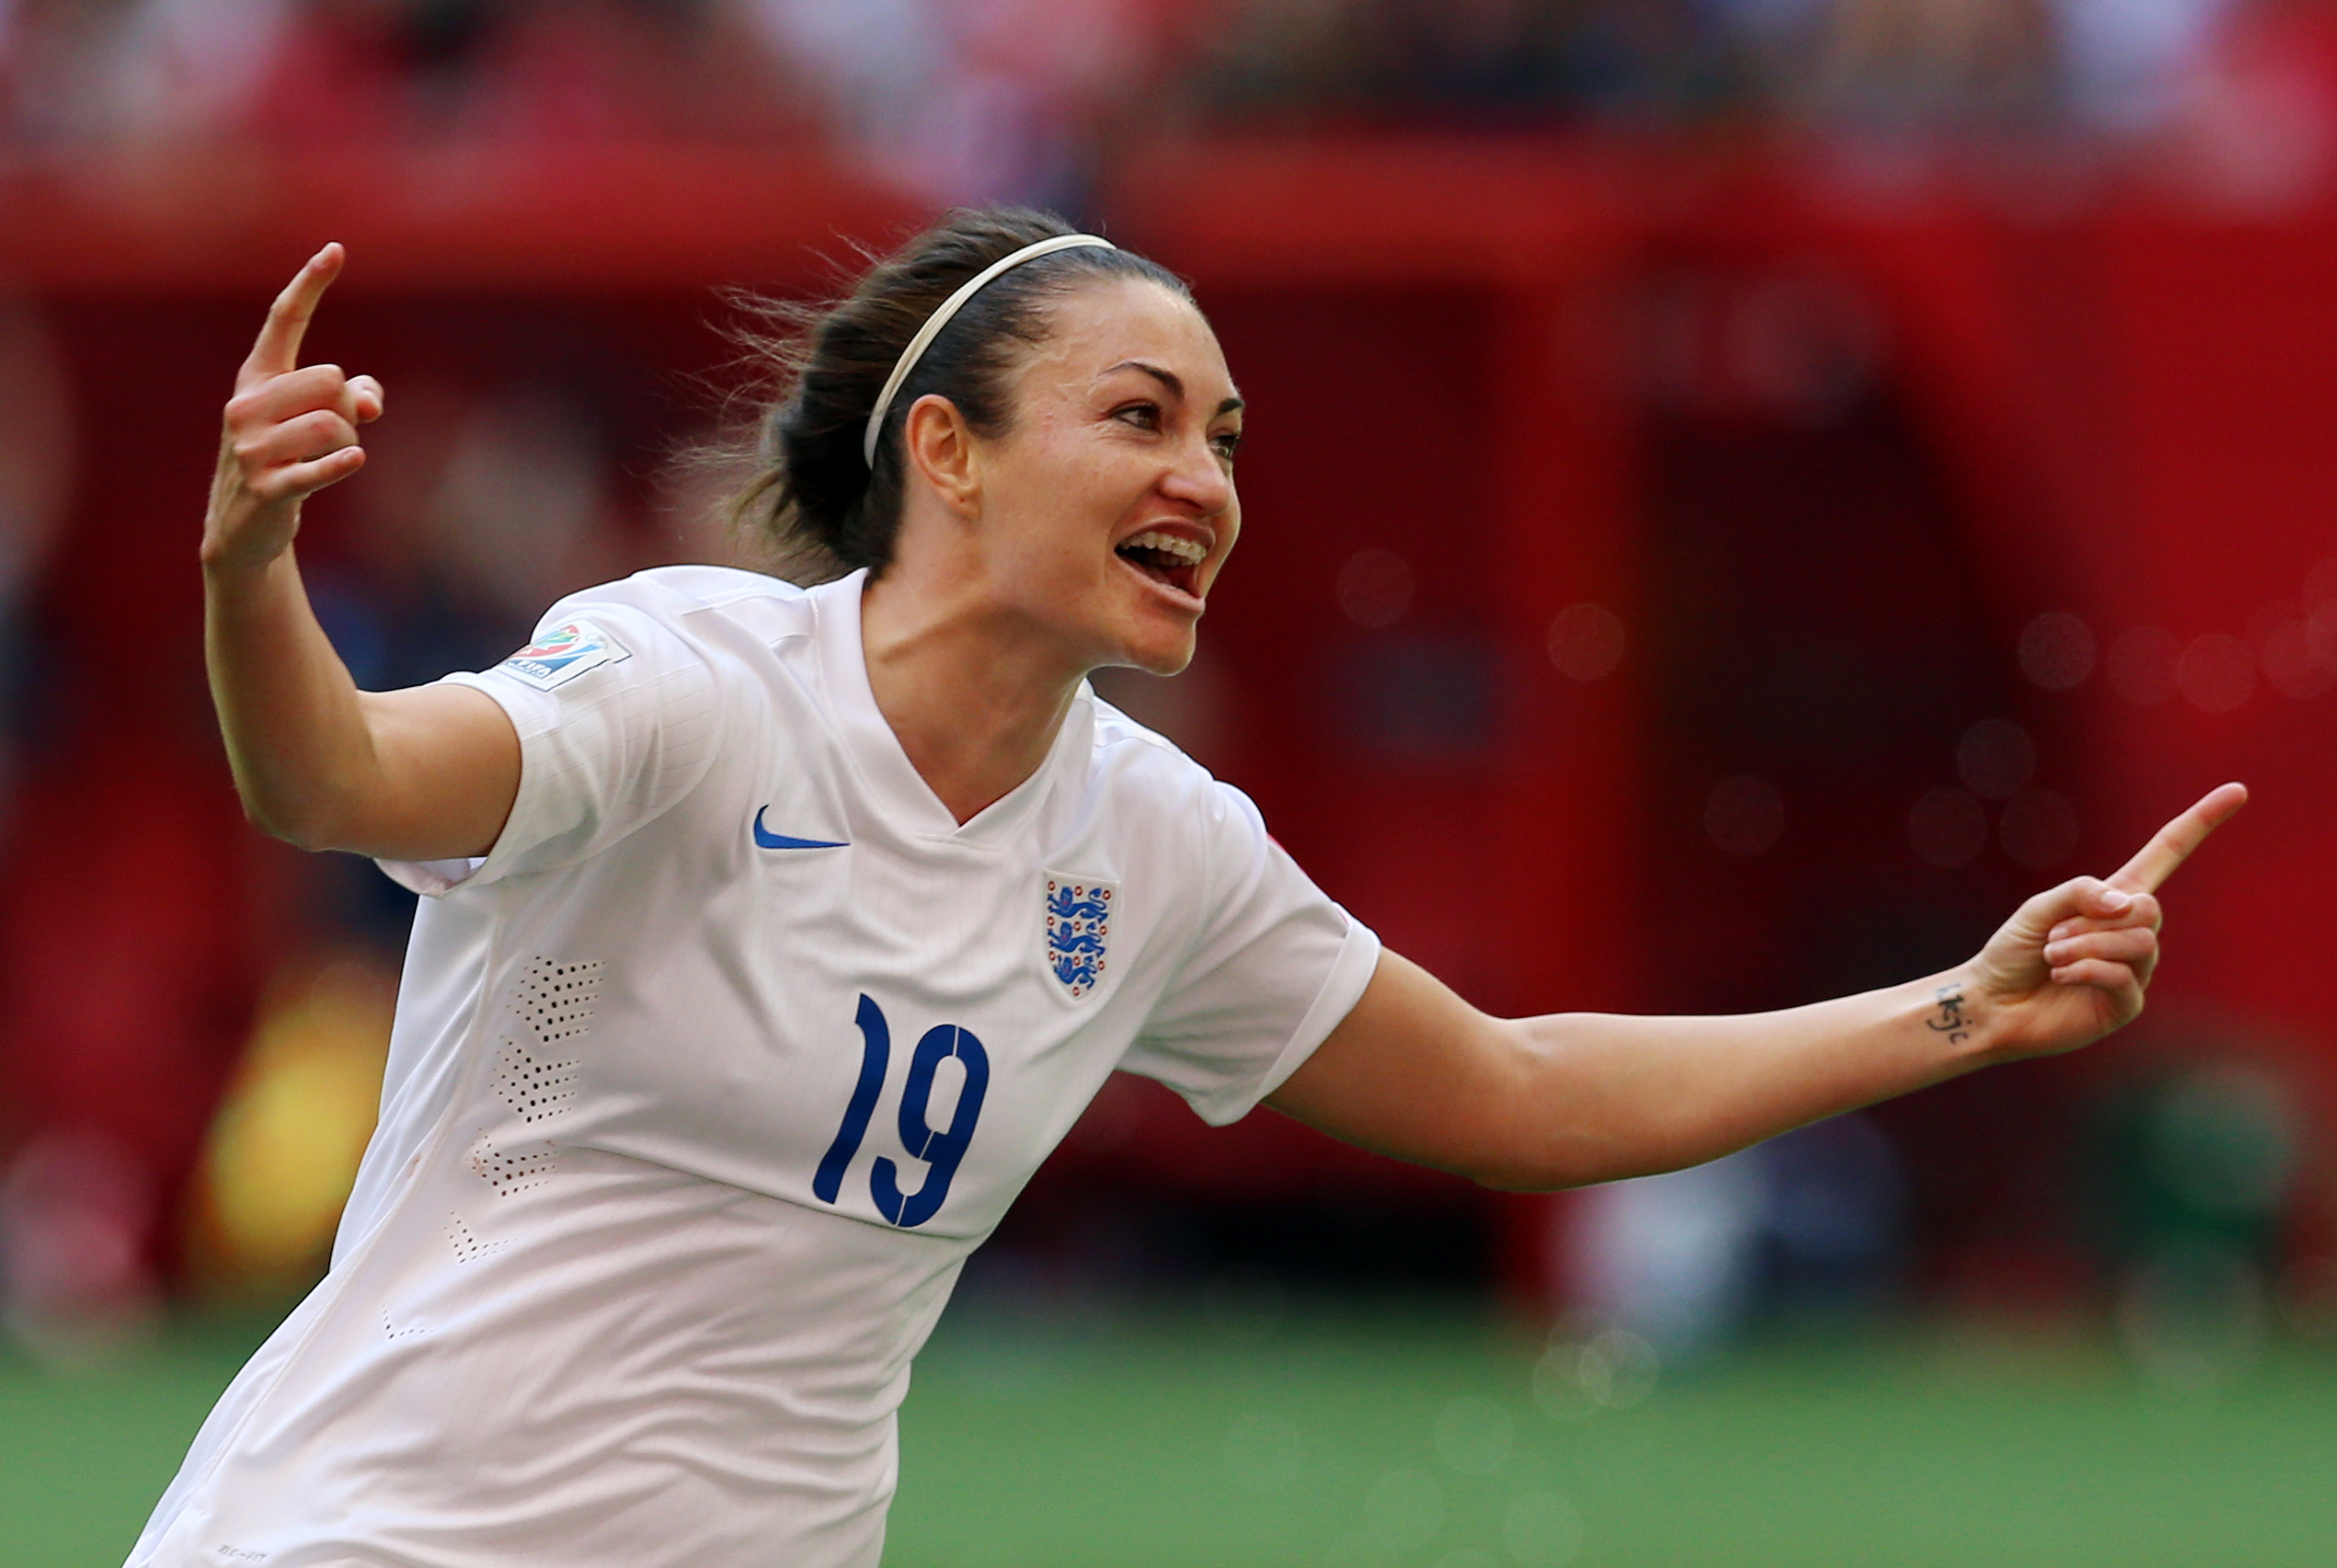 England's Jodie Taylor celebrates scoring at the 2015 World Cup